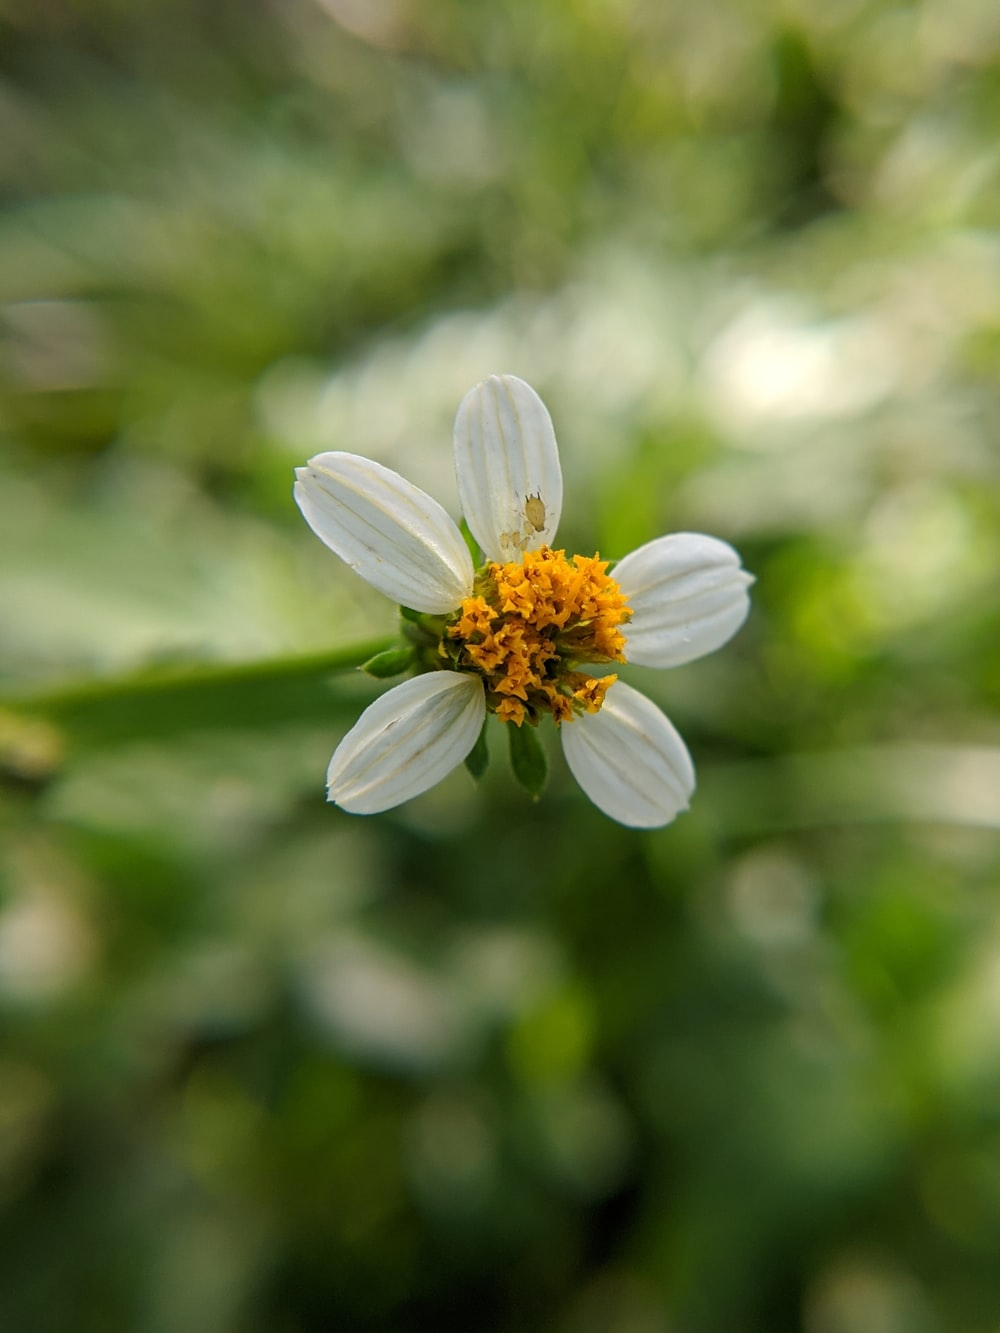 selective focus photography of white 5-petaled flower